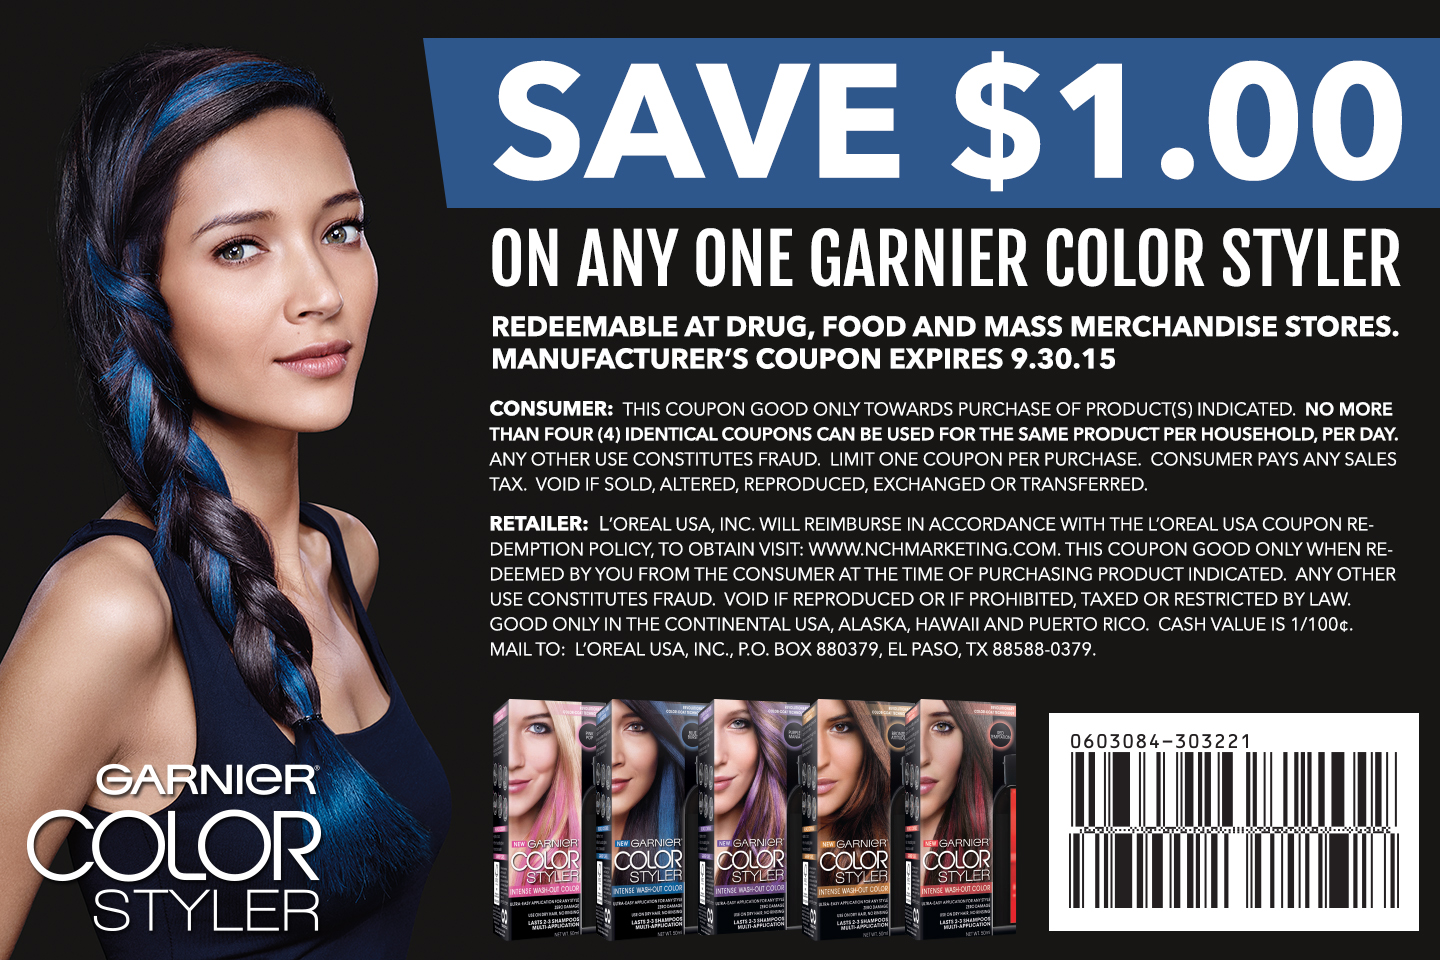 game day style bleeding blue with garnier color styler space place southern gracespace place southern grace - Garnier Color Styler